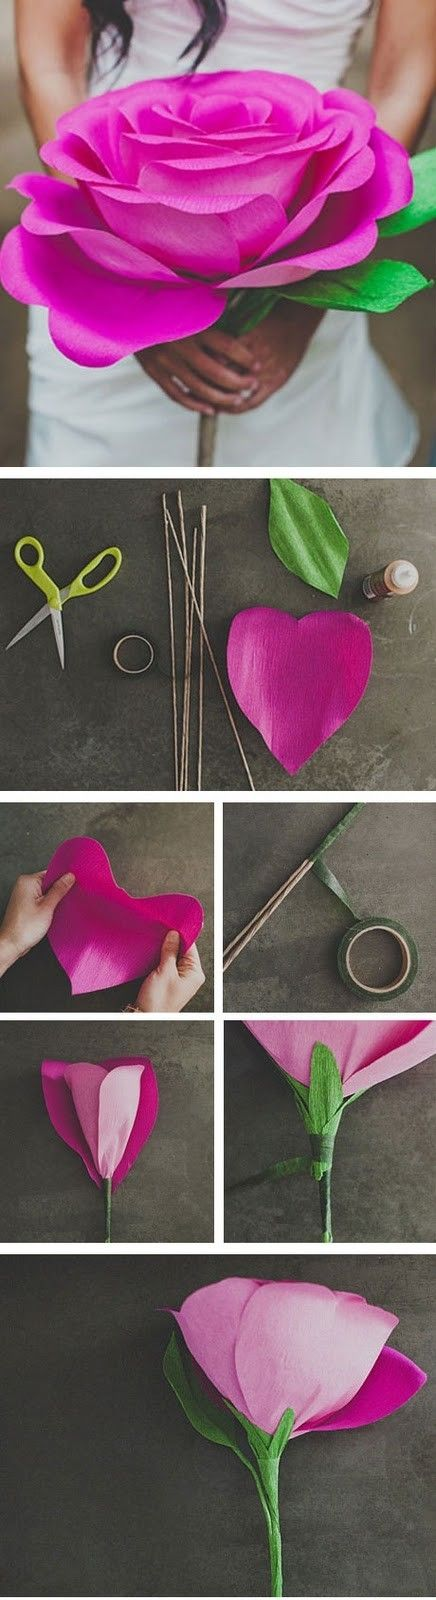 Diy Flor Gigante De Papel Crepe Taste Celebration